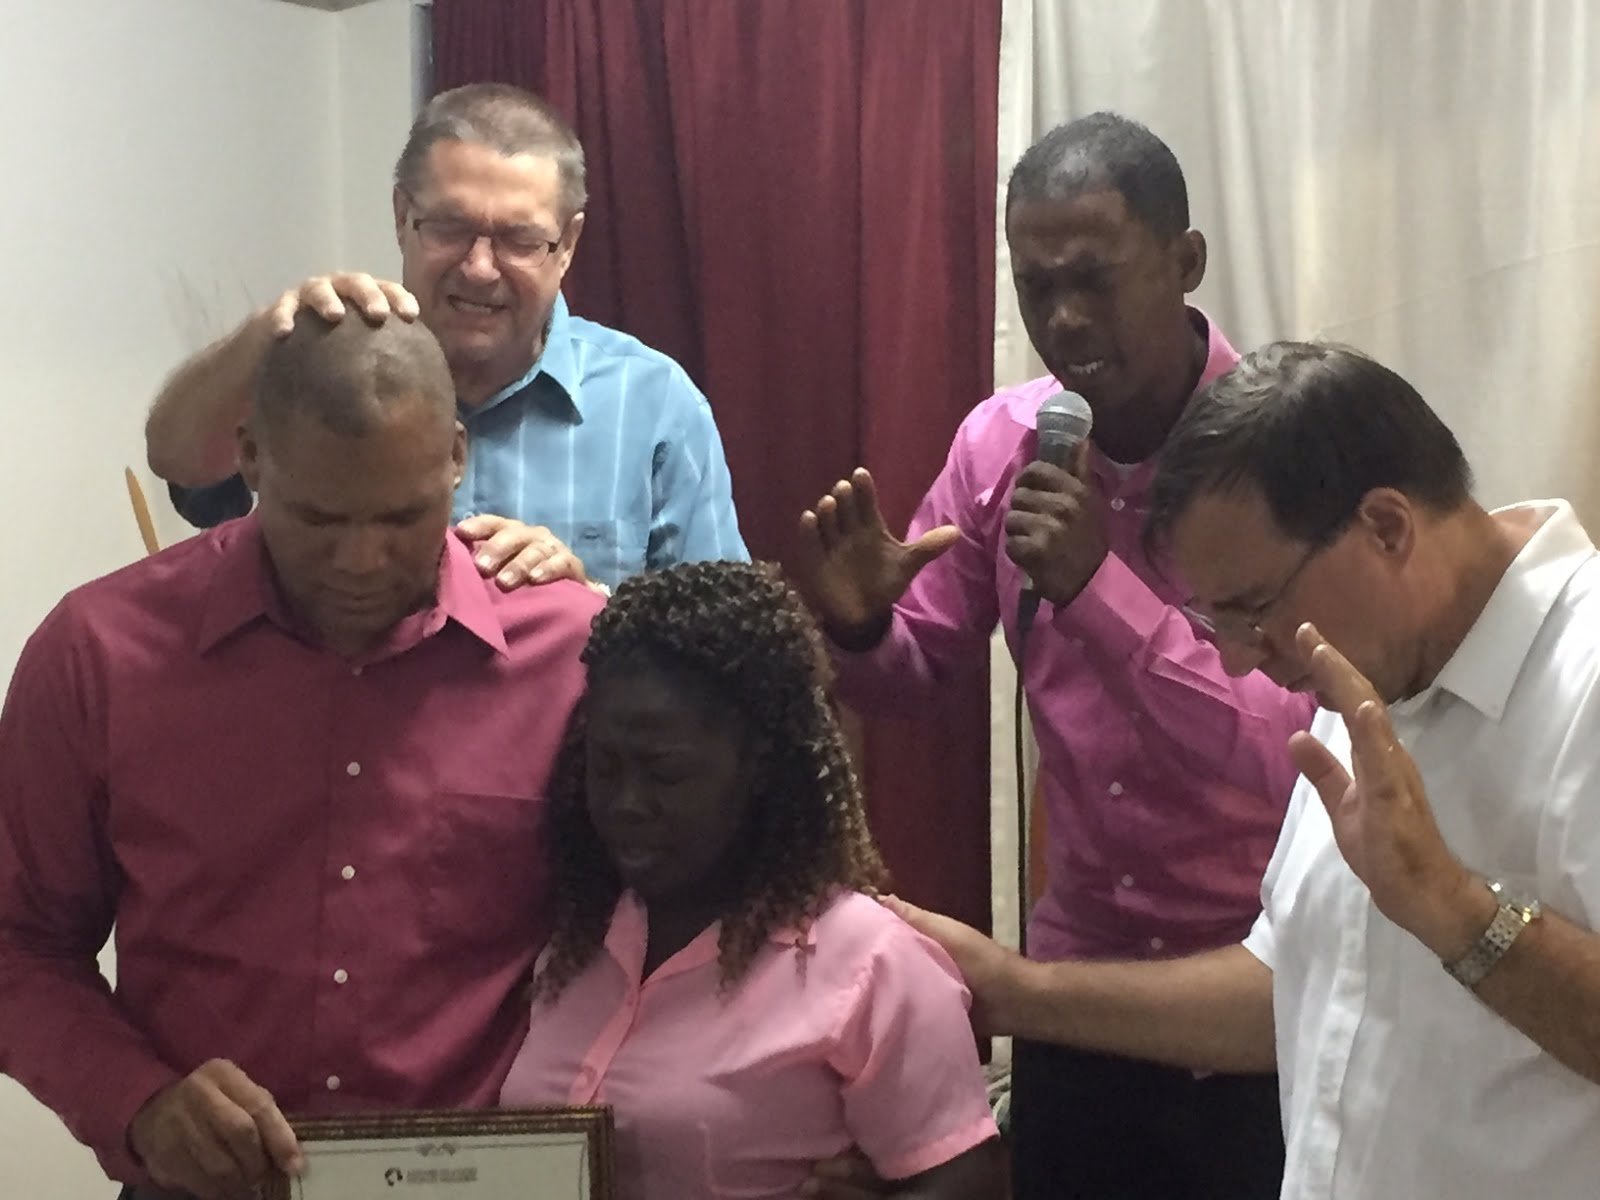 Confirming pastors in St. Kitts